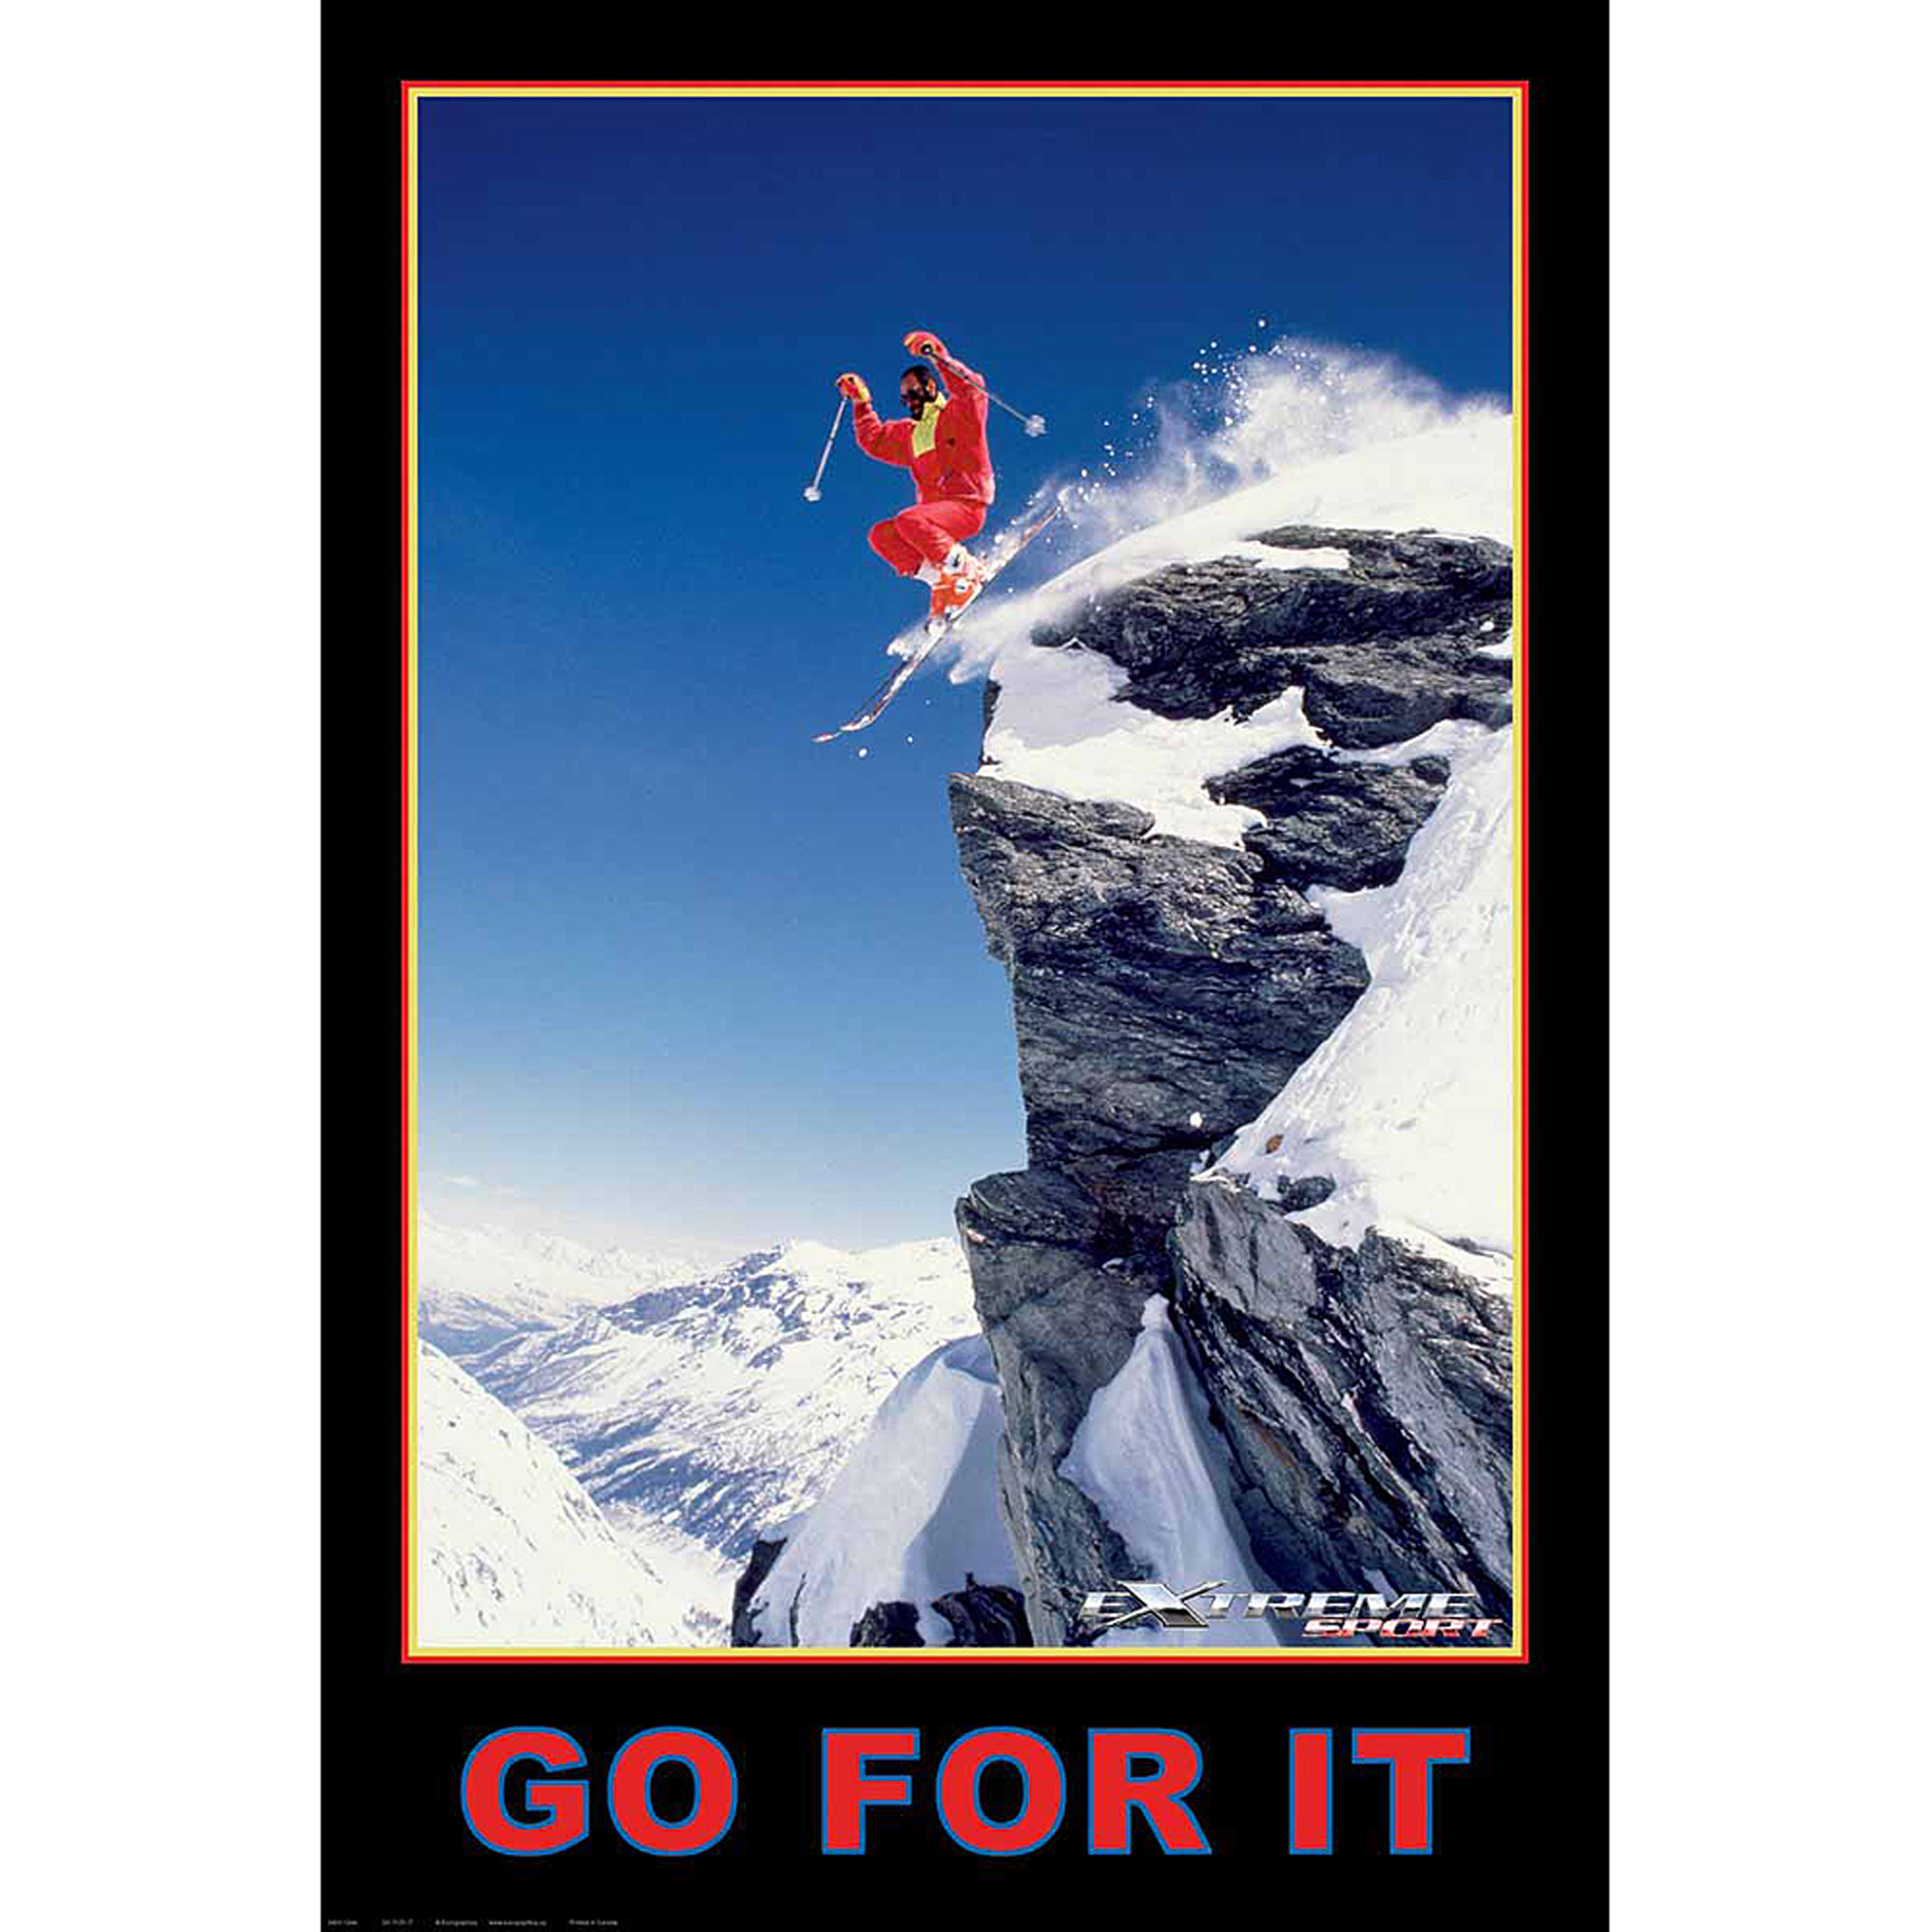 Skiing - Go For It